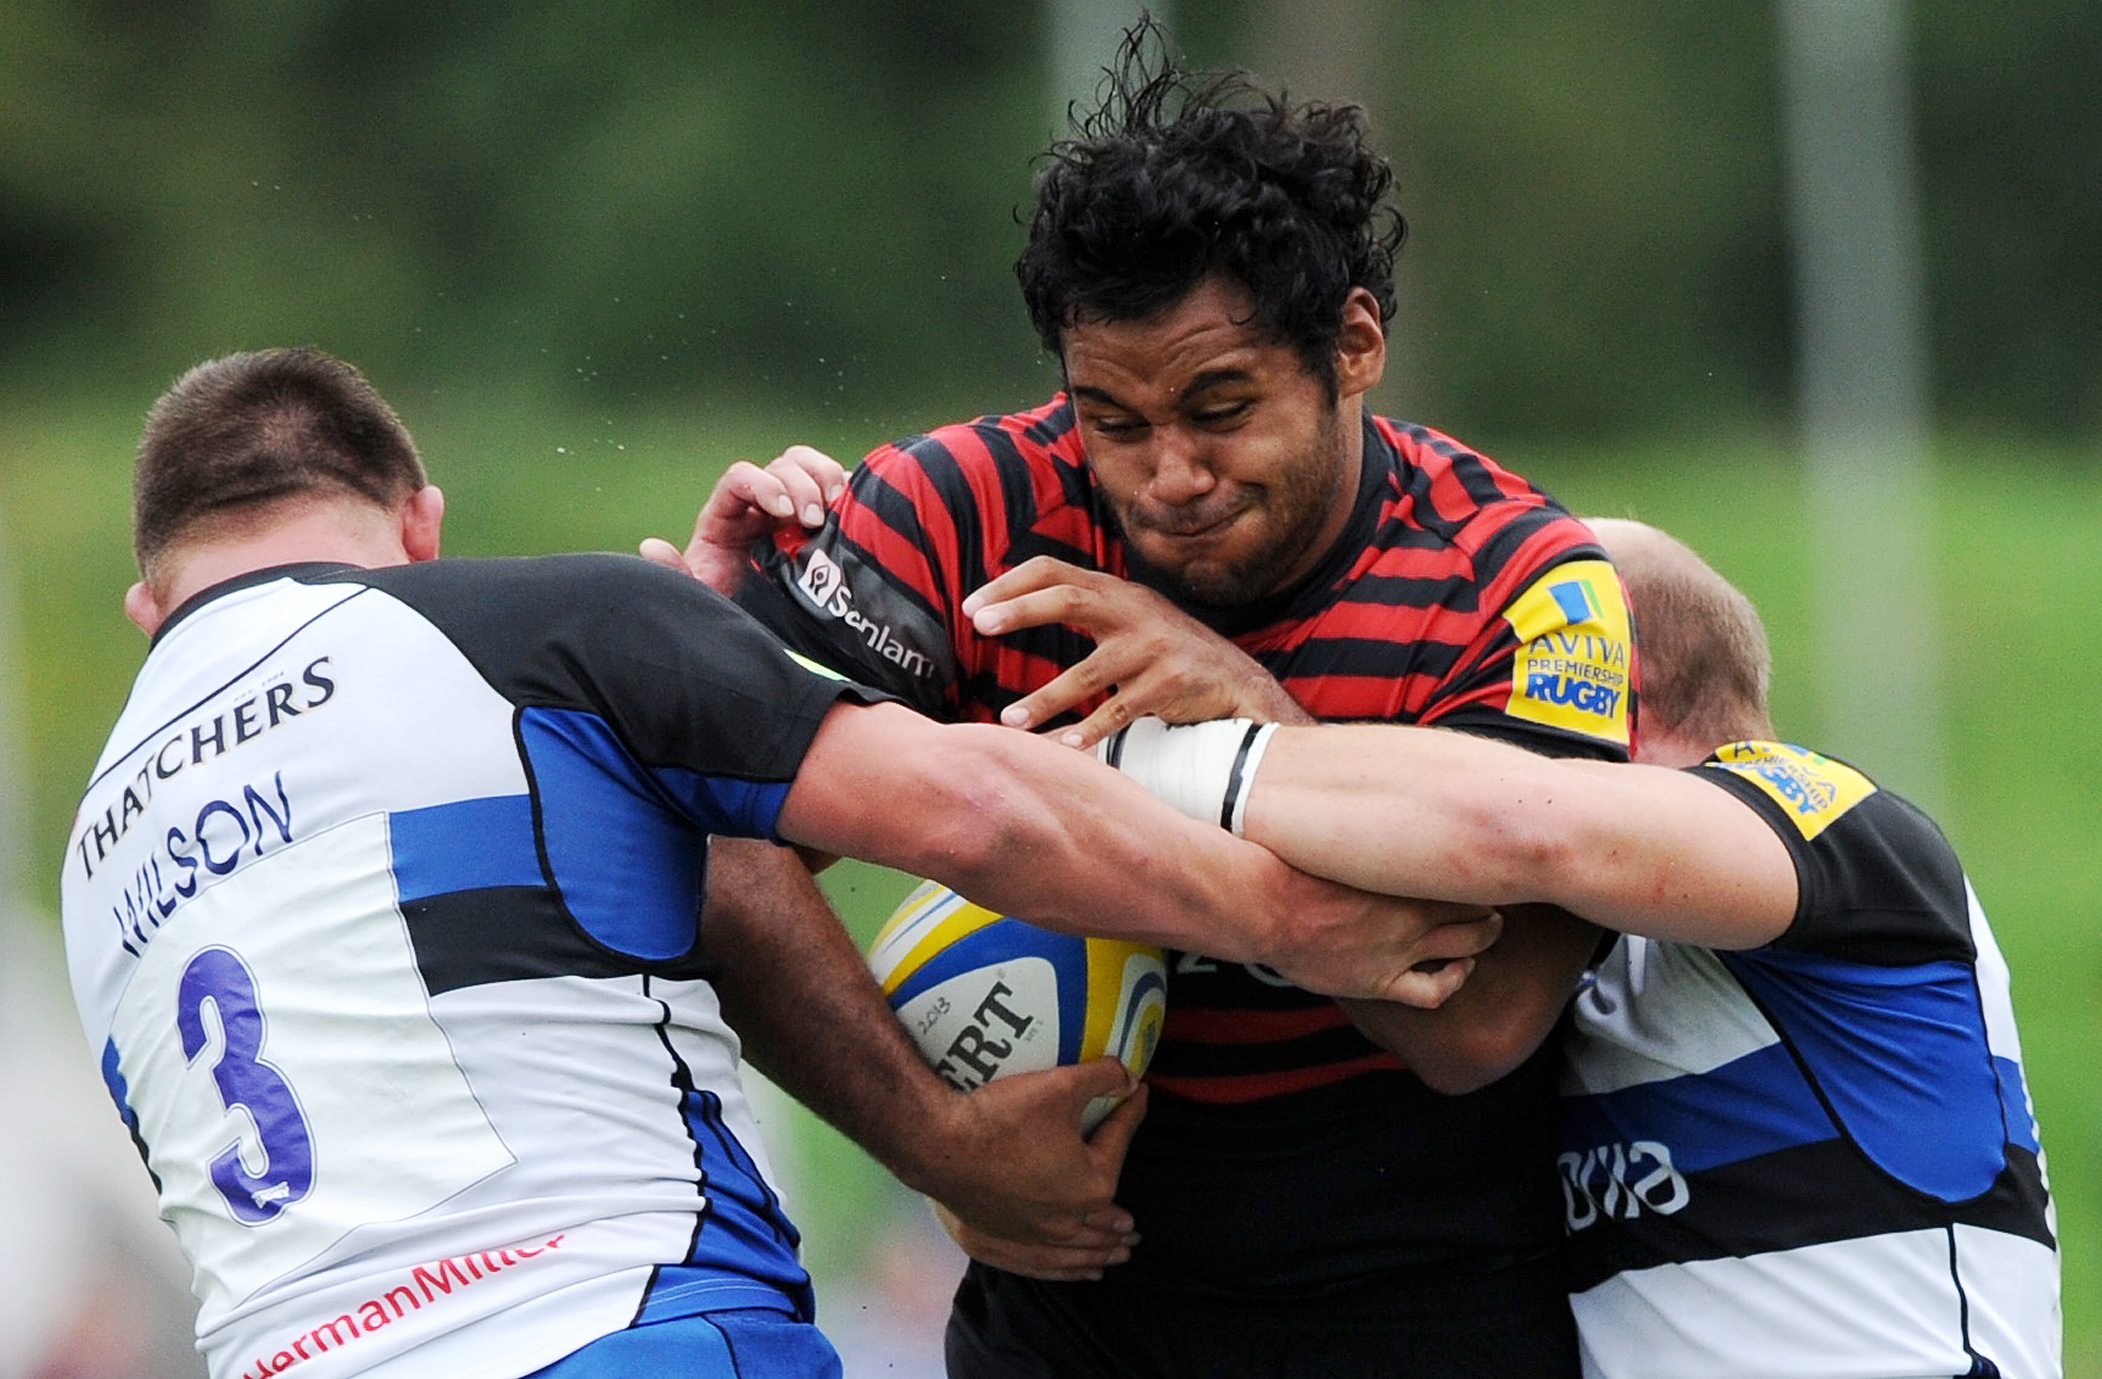 England international Billy Vunipola returned to action against Ulster last weekend. Picture: Action Images